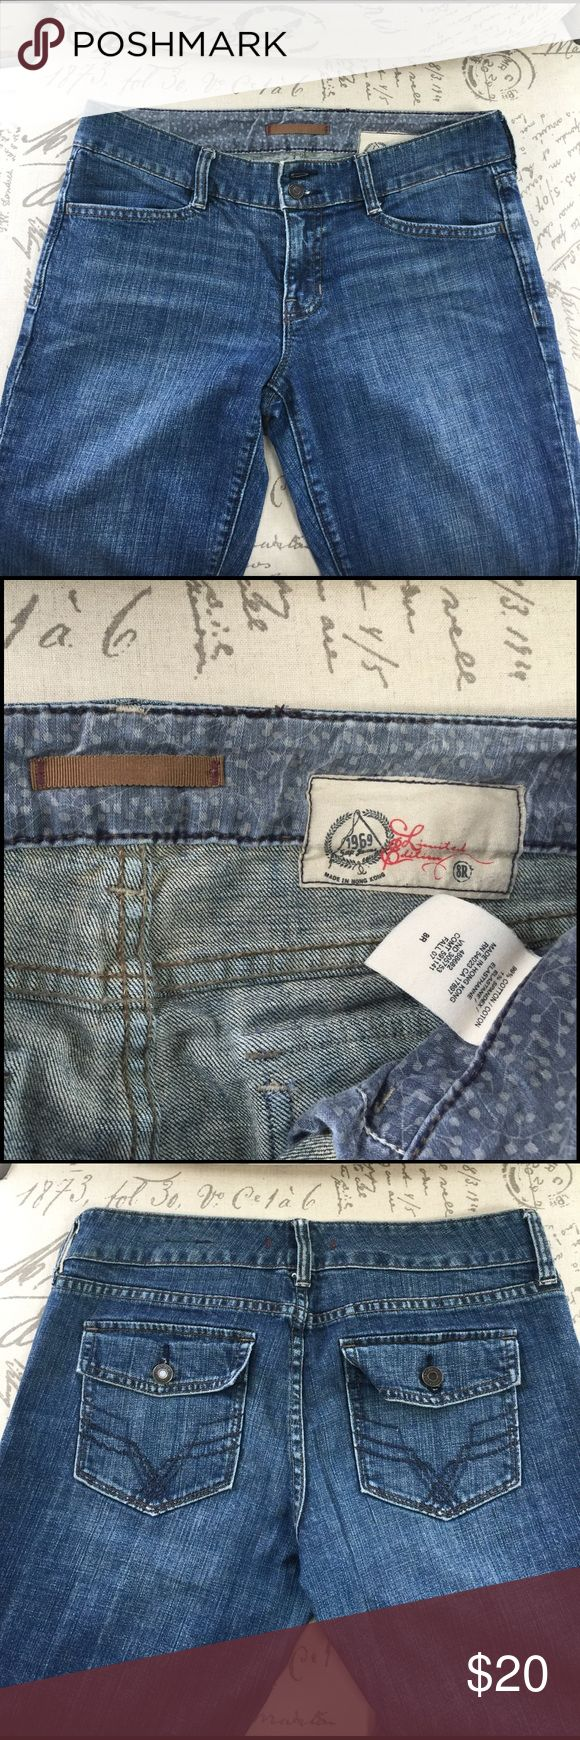 "Gap 1969 Limited Edition Jean Gap Jeans 1969 Limited Edition Made in Hong Kong mid-rise Size 8R Inseam 30"" In great shape for older style boot cut Gap jeans. I hoped I'd be able to fit back into these. Only wear is seen on the bottom leg hem. But still has a lot of life. Get your self a great pair of boot cut jeans! GAP Jeans Boot Cut"